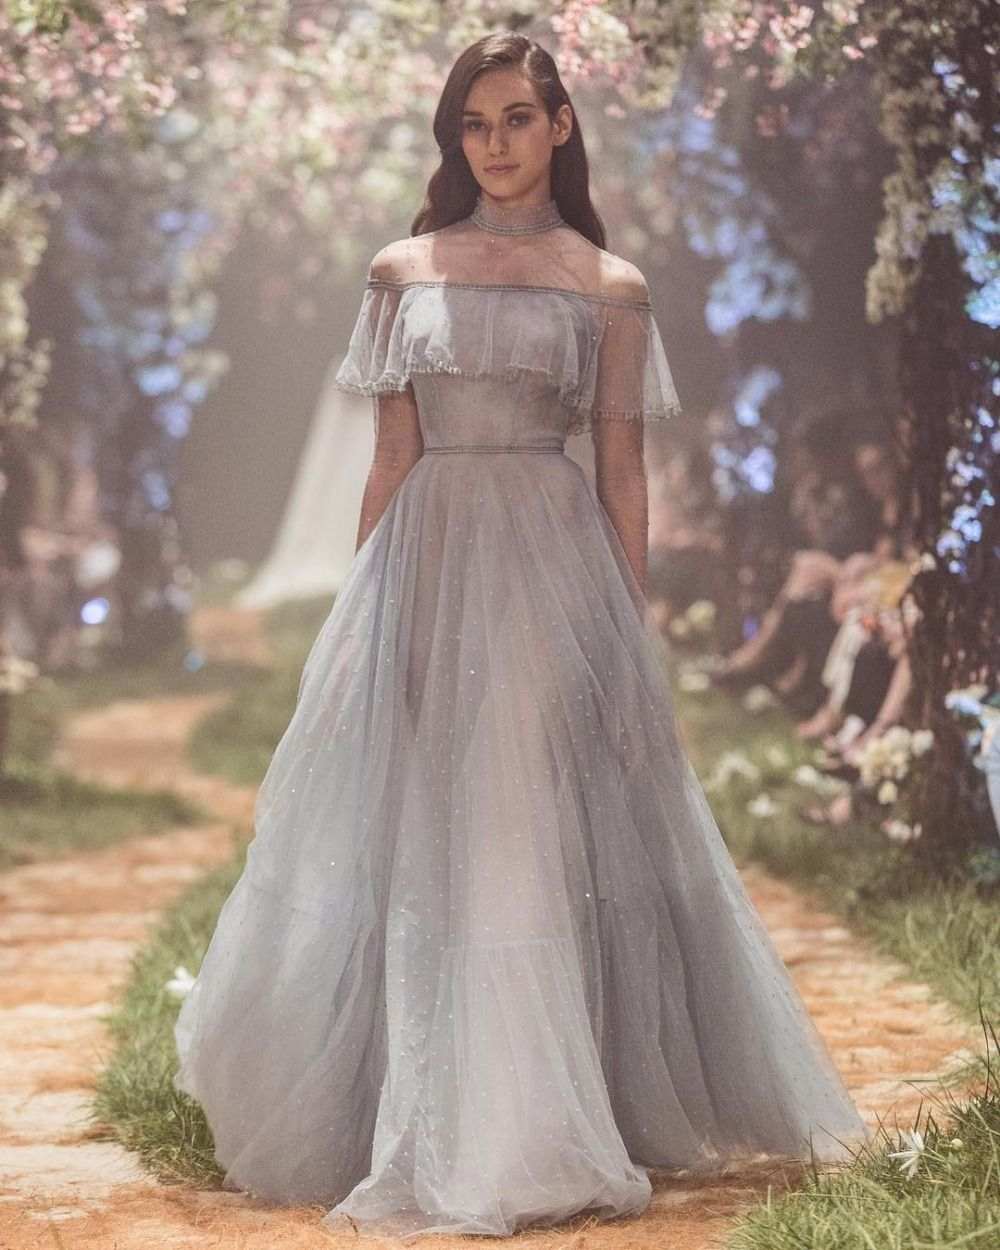 New Disney Wedding Dresses By Paolo Sebastian | Disney wedding ...